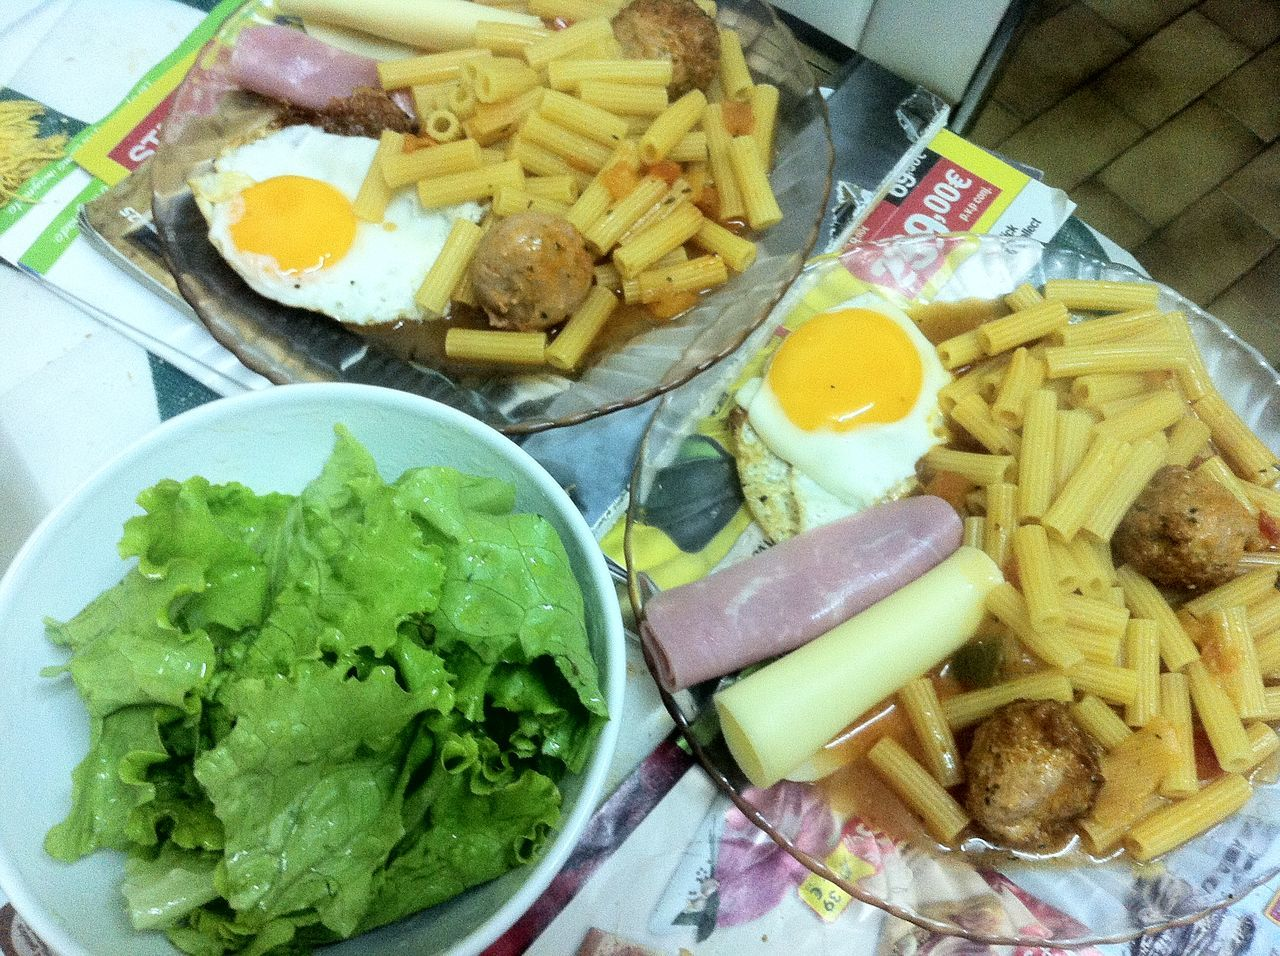 Close-up Day Eat Egg Enjoy Enjoying Life Food Food And Drink Foodphotography Freshness Fried Egg Healthy Eating Indoors  No People Plate Ready-to-eat Visual Feast